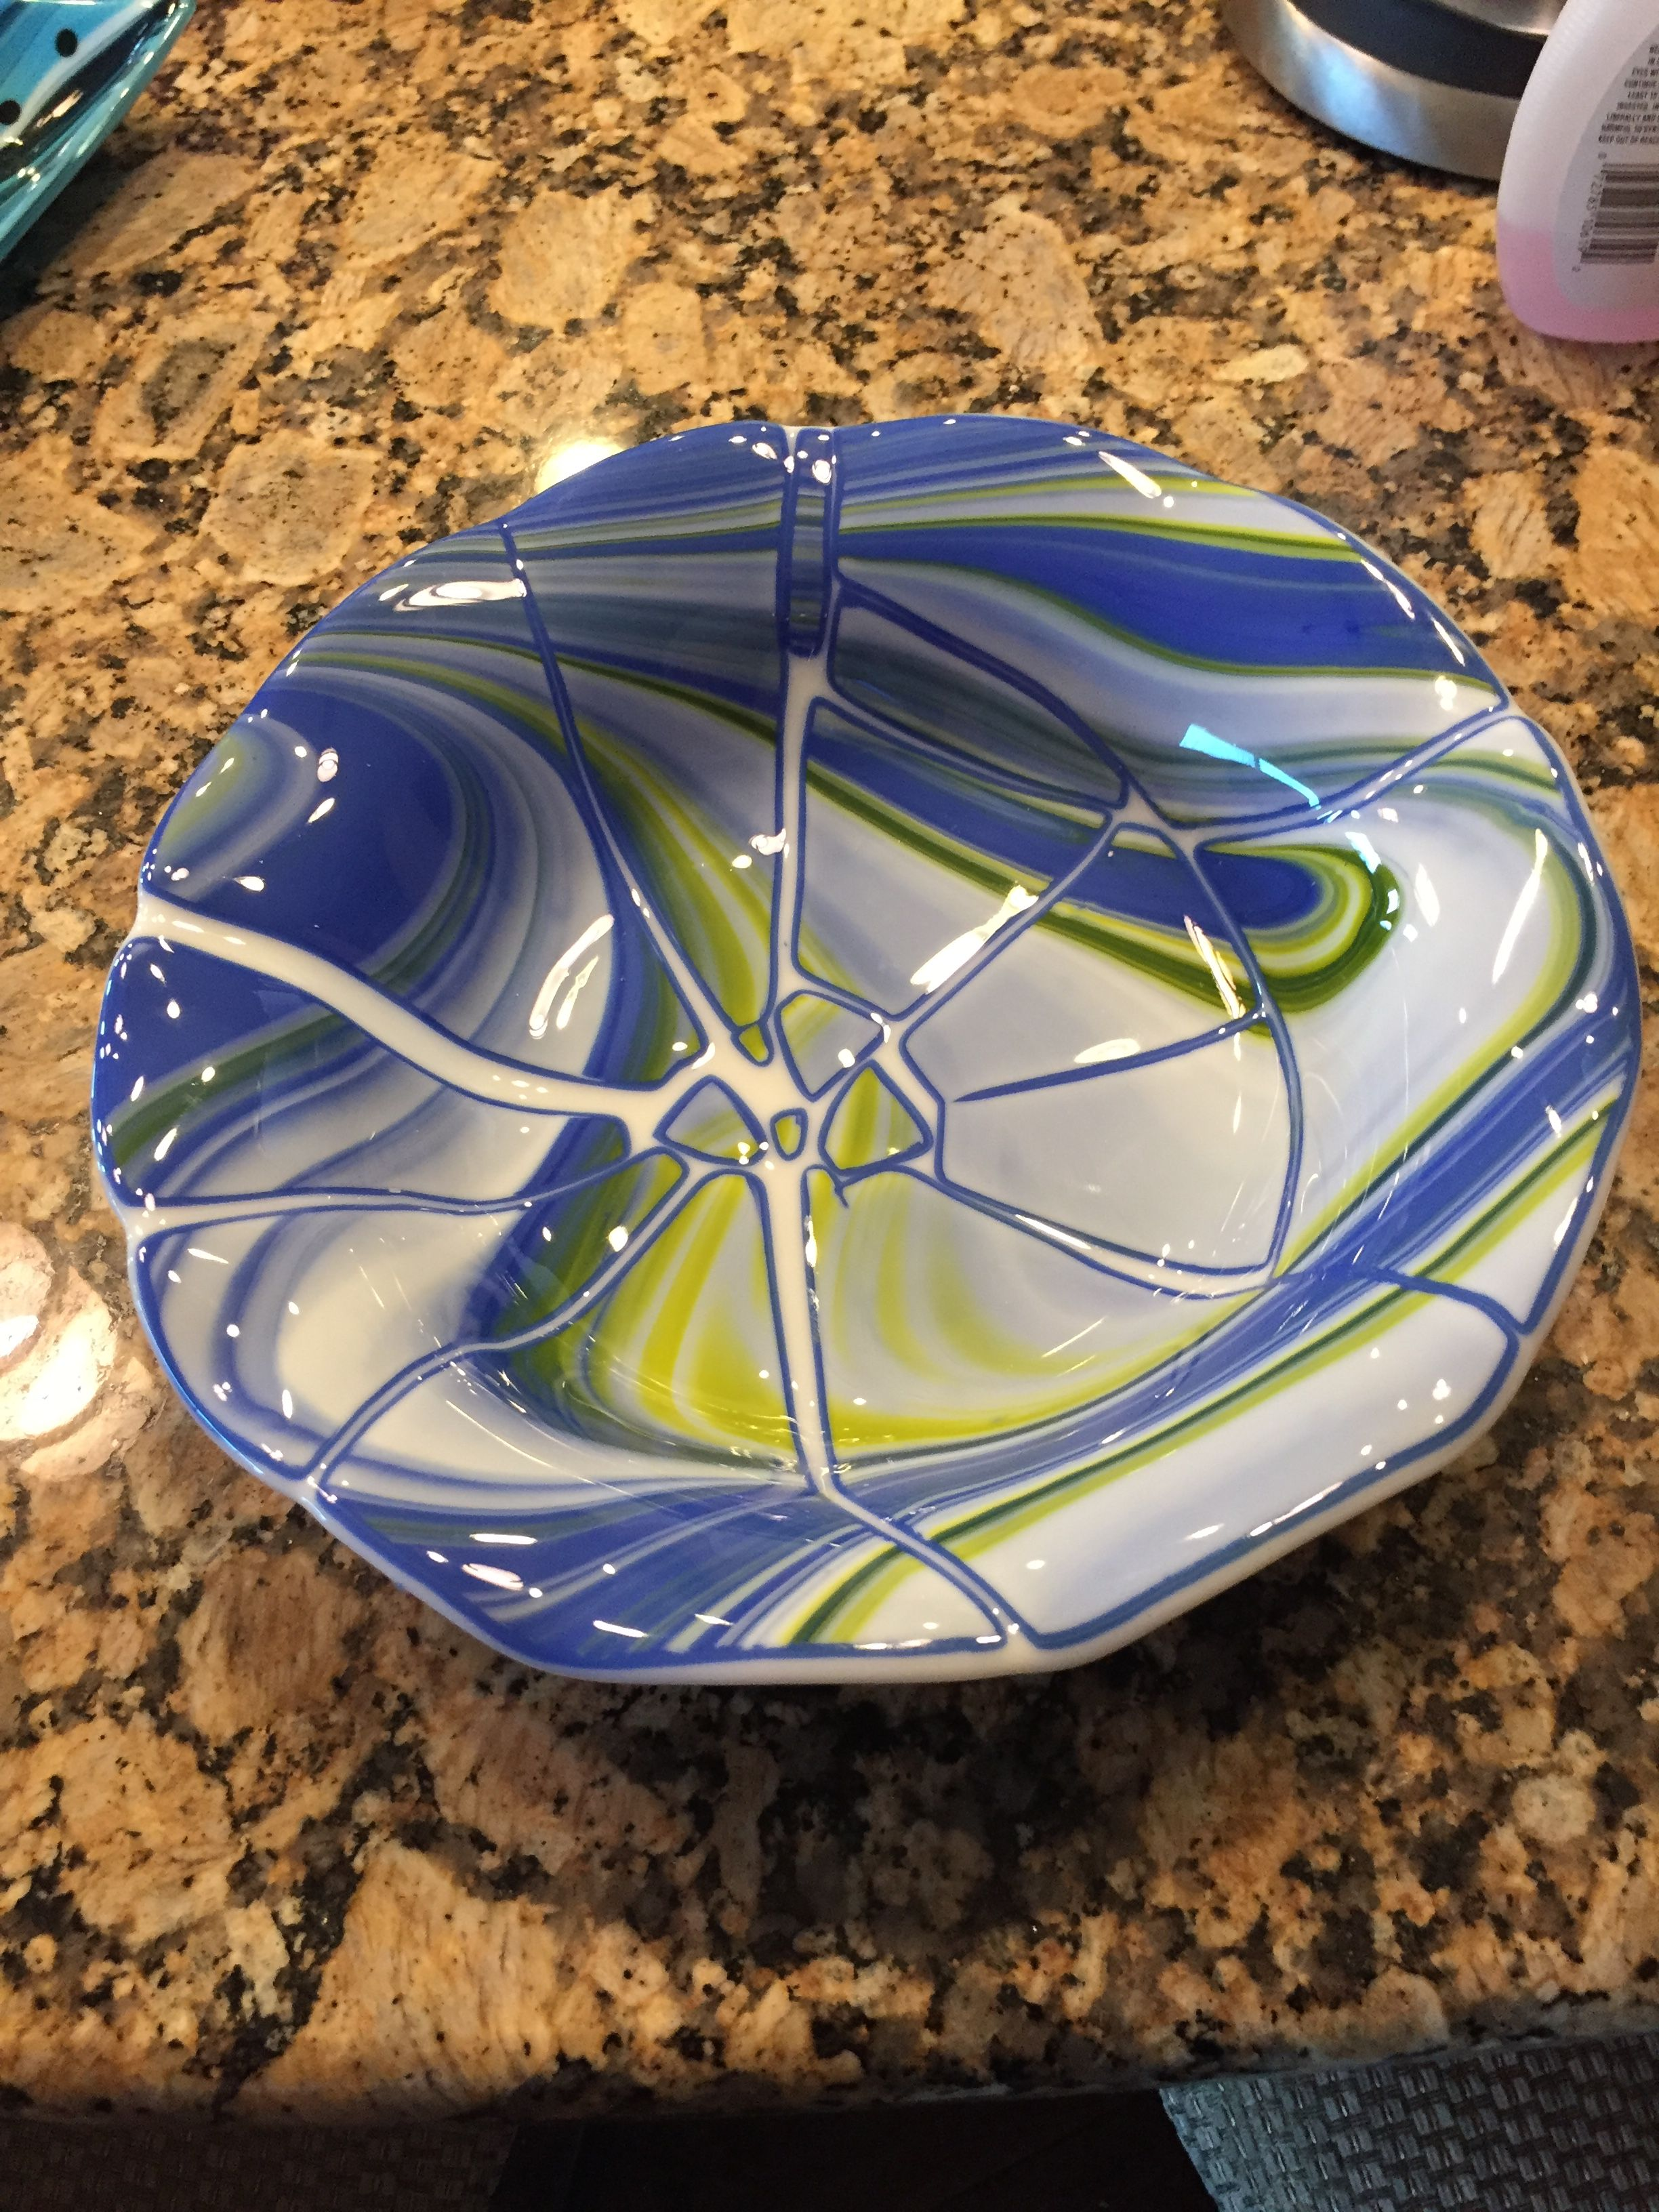 SeaHawks cracked bowl Glass, Bowl